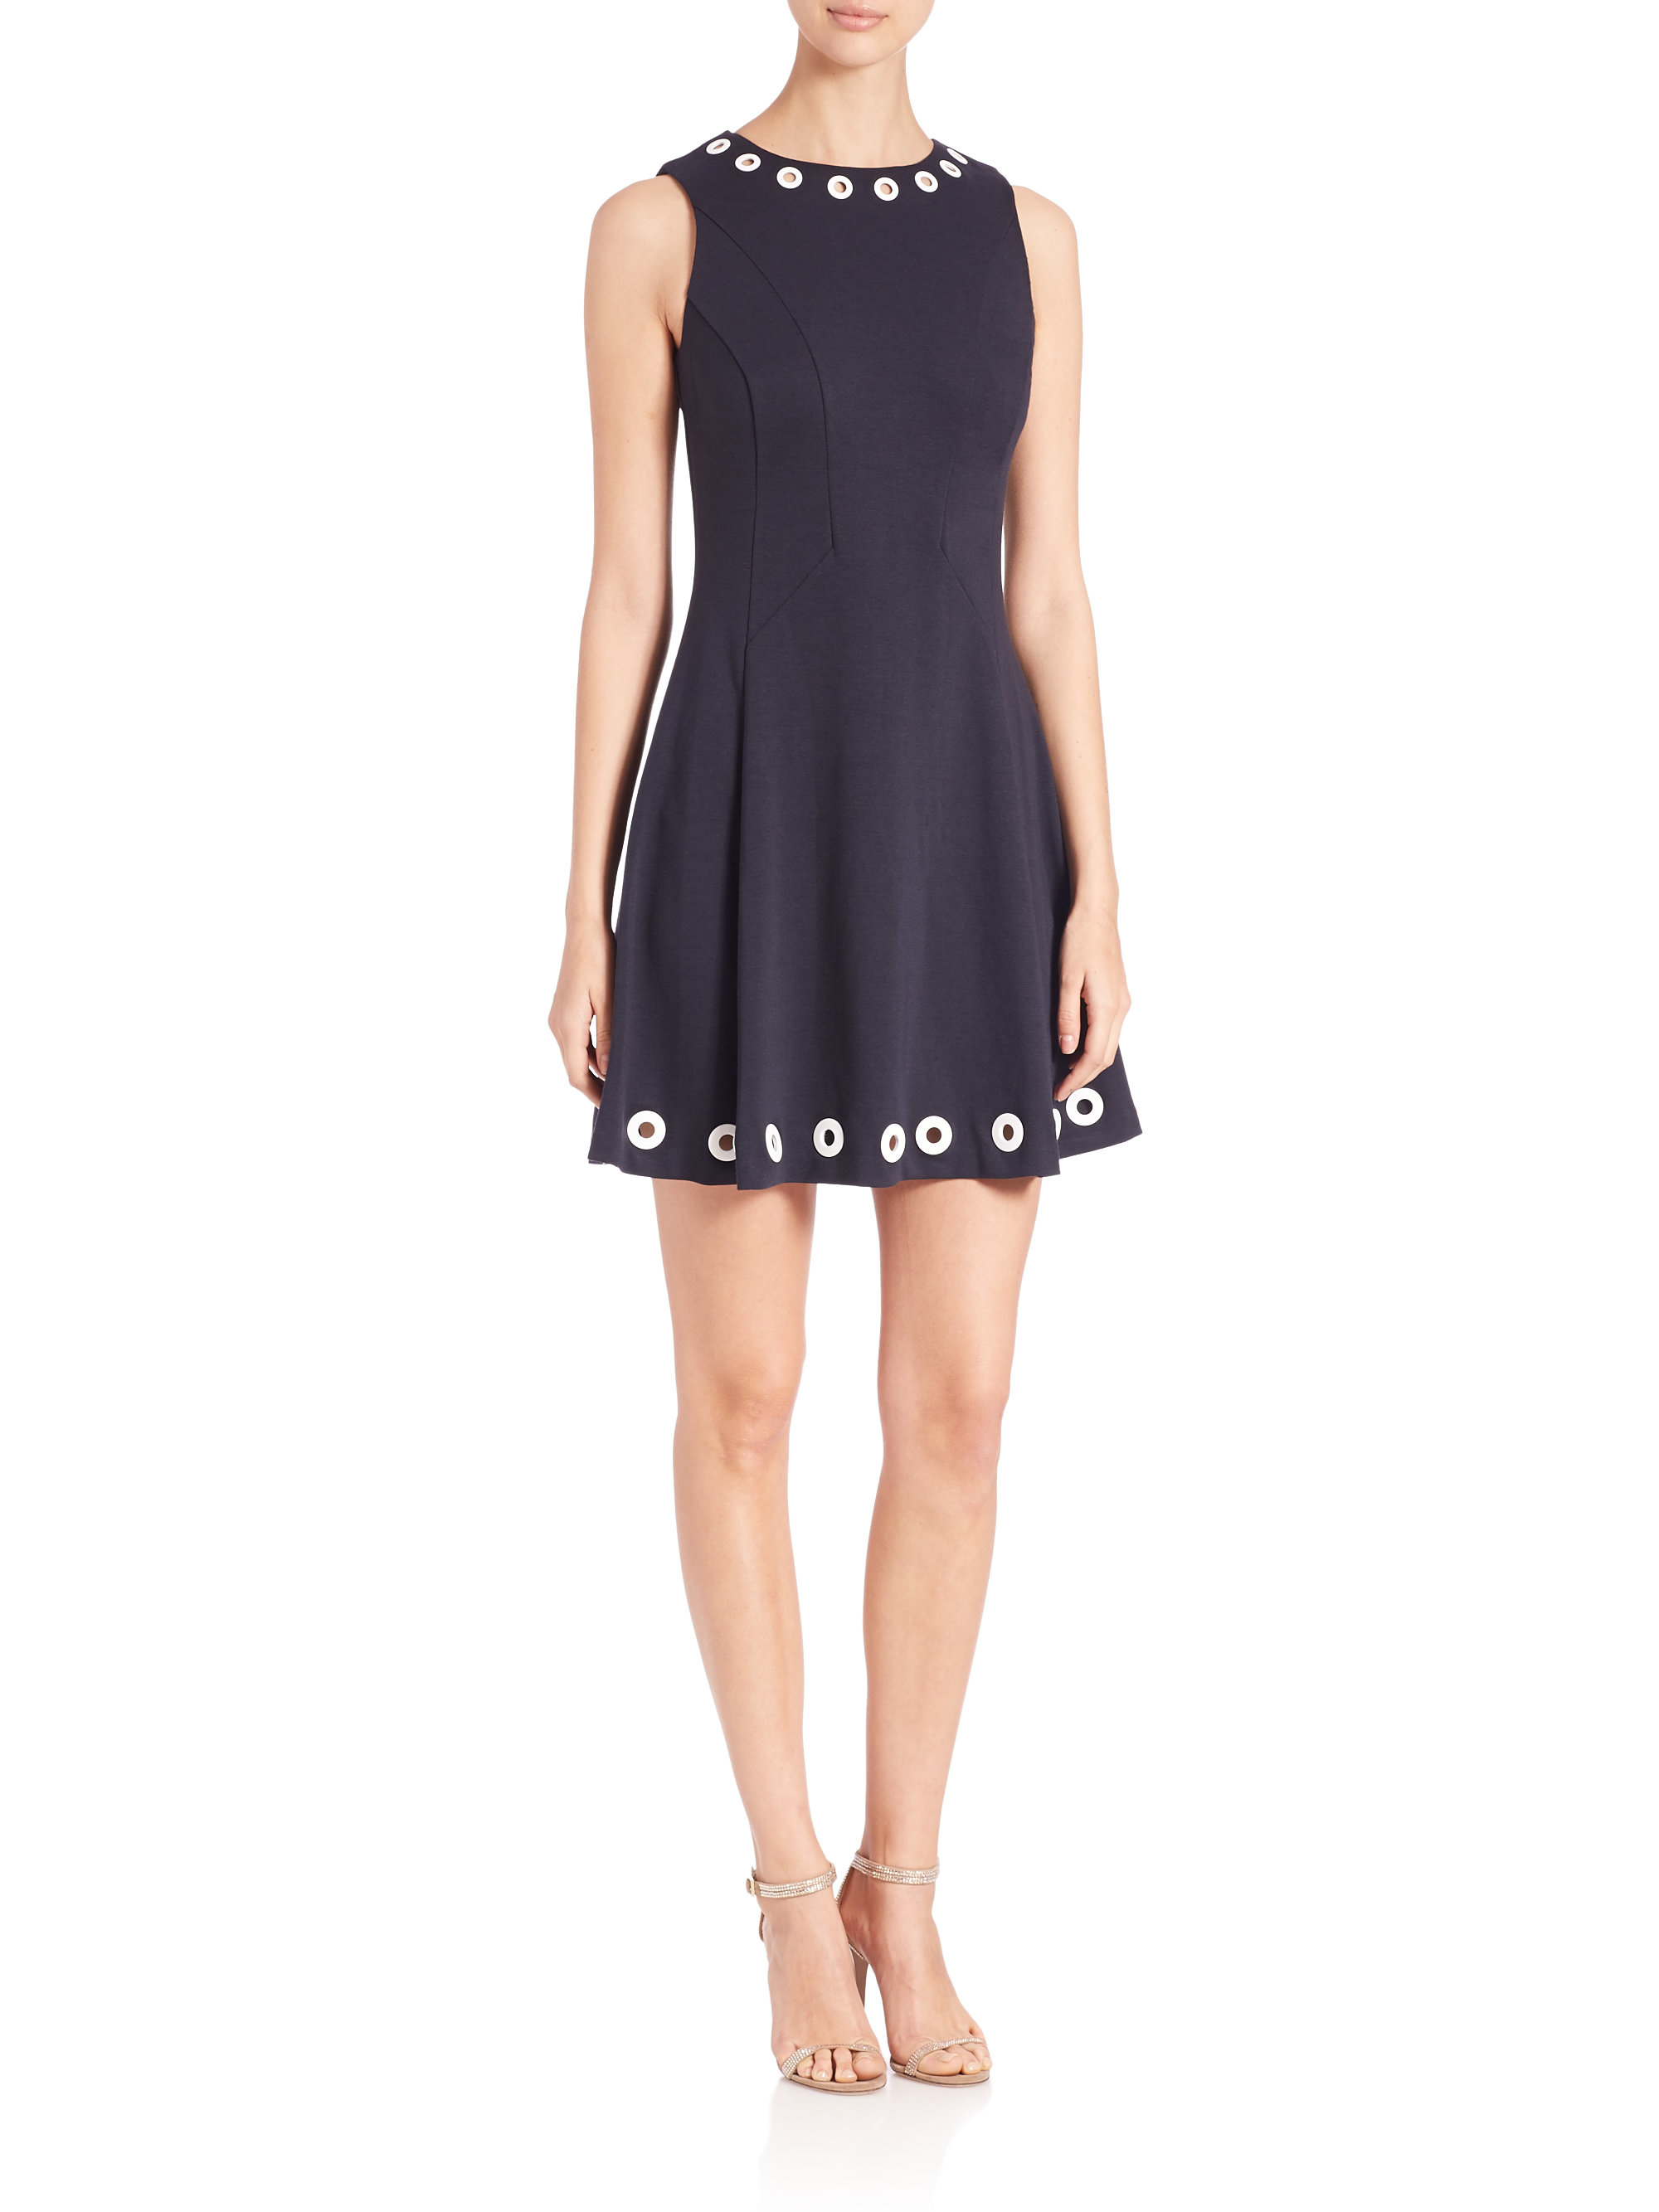 129507c0ab Lyst - MICHAEL Michael Kors Grommet-detail Flare Dress in Blue